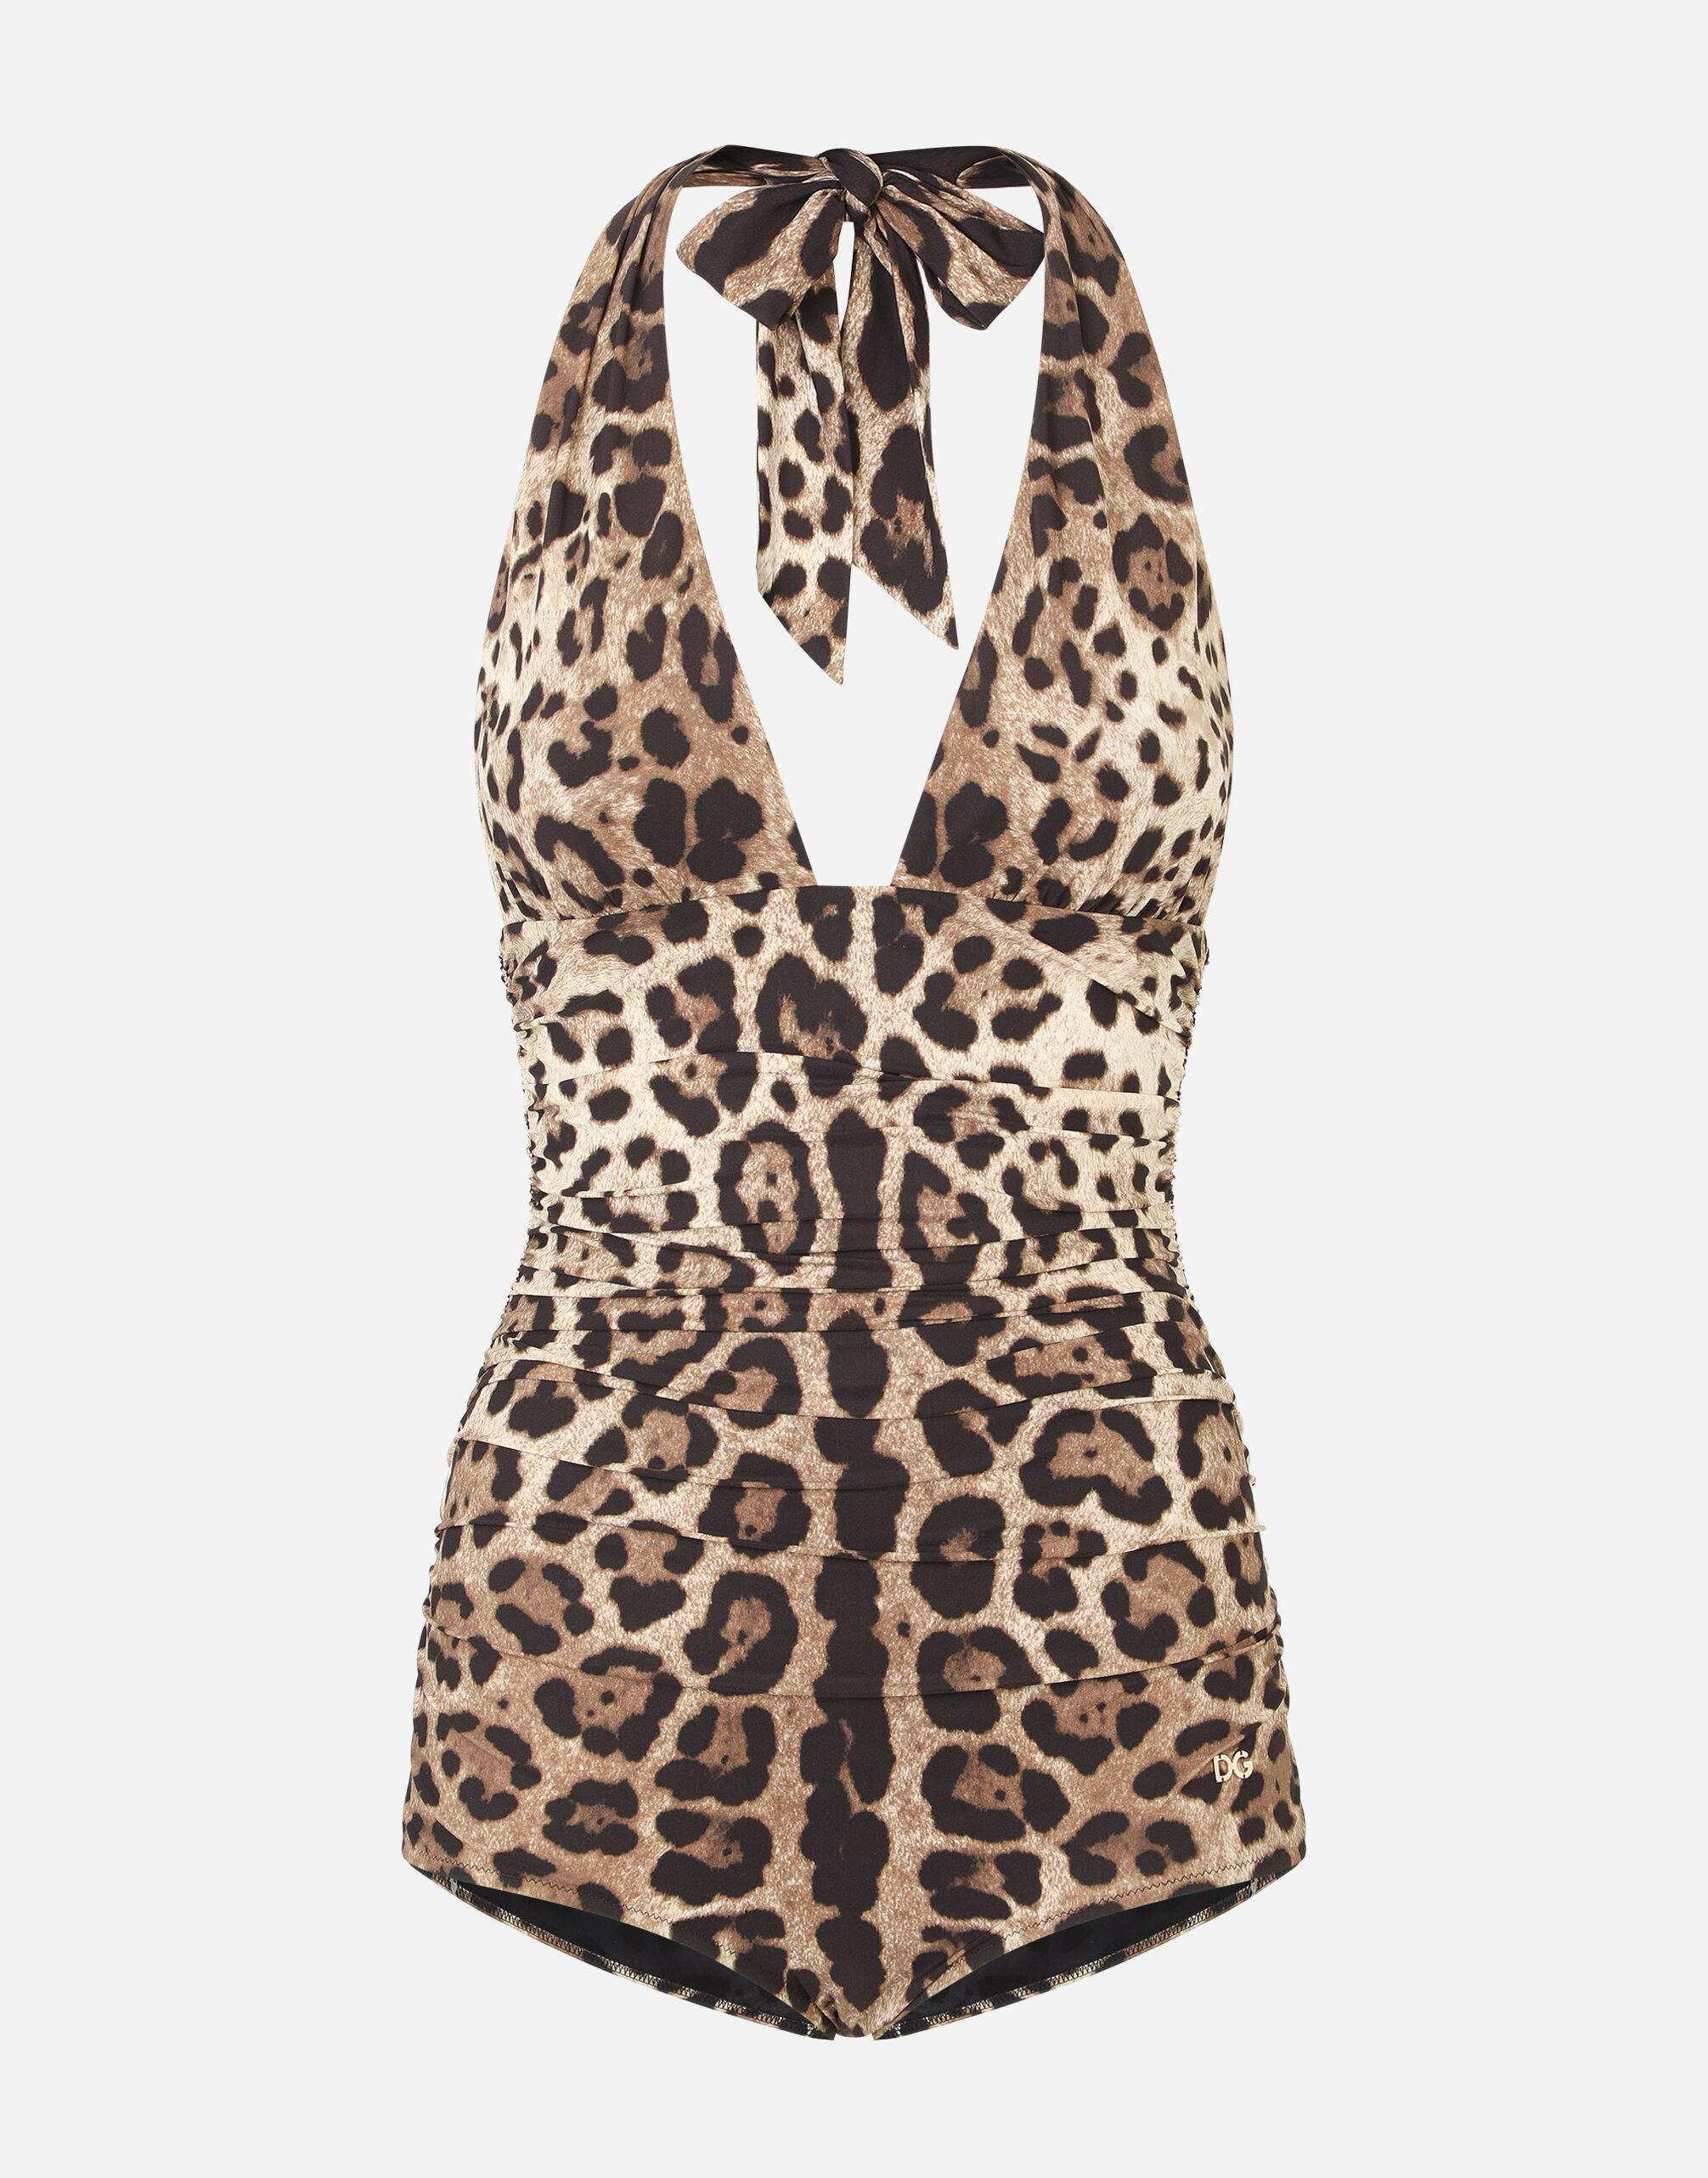 Leopard-print one-piece swimsuit with plunging neckline 2